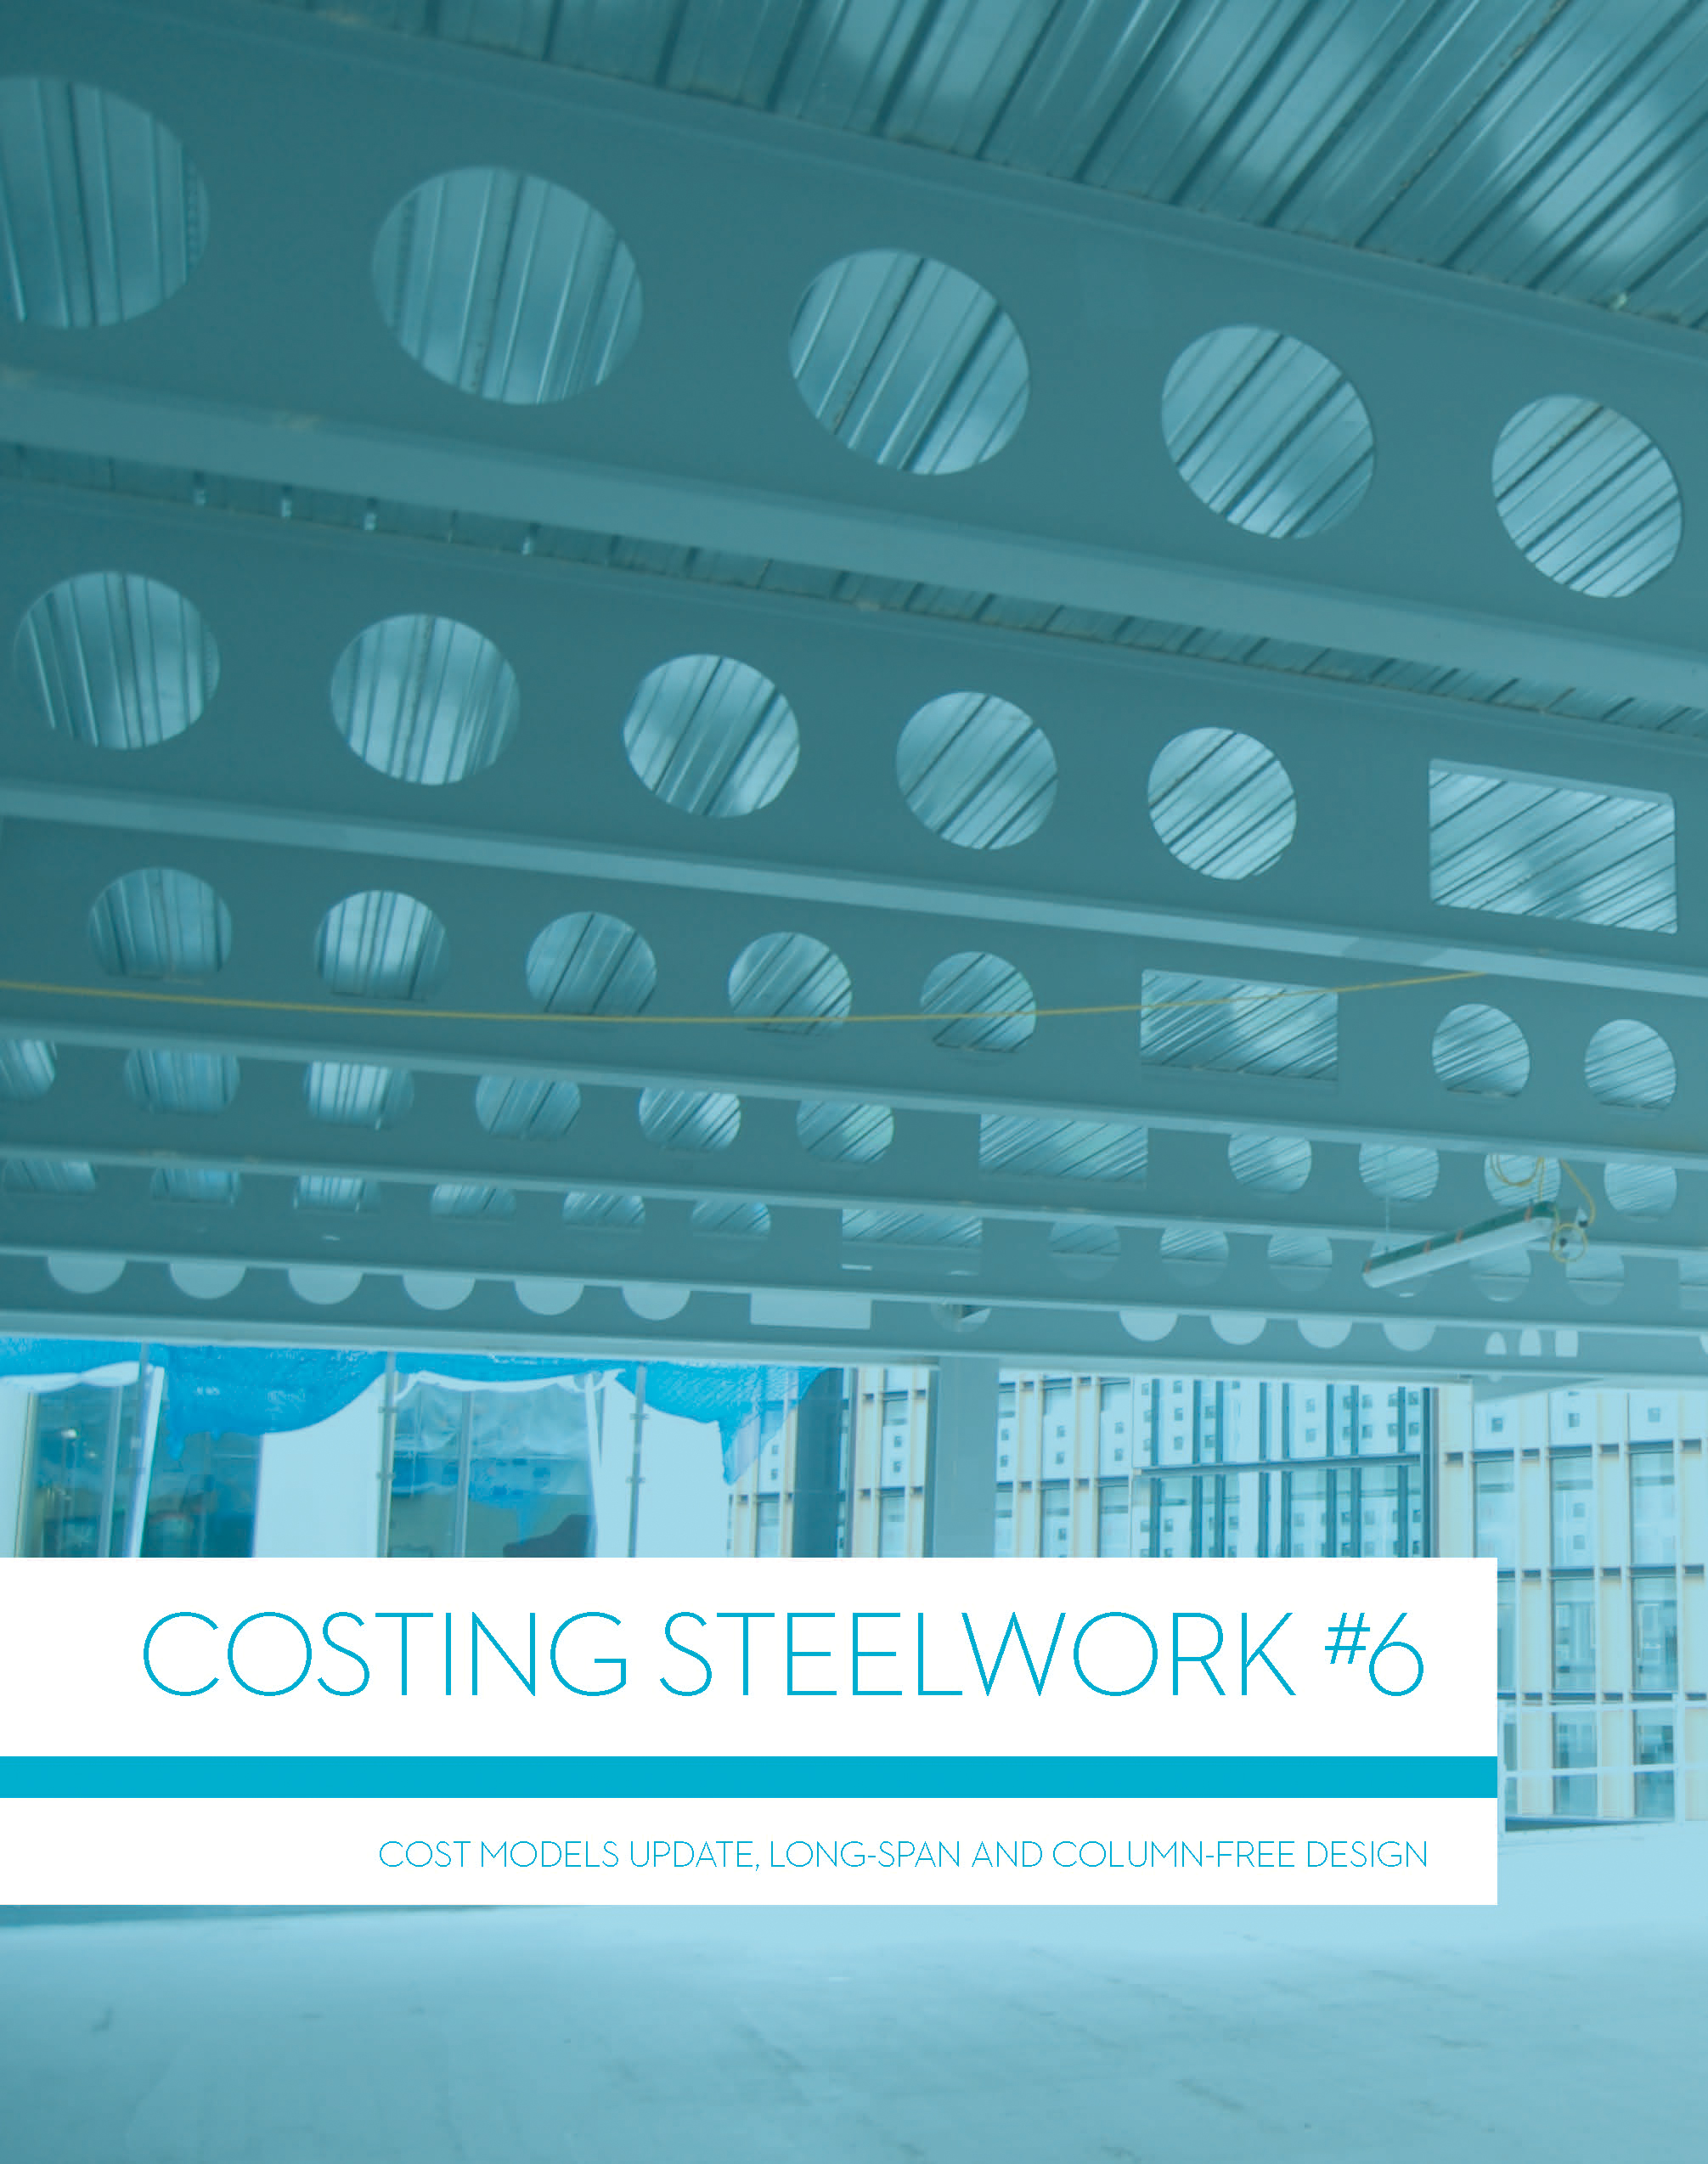 Costing Steelwork July 2018 cost model update